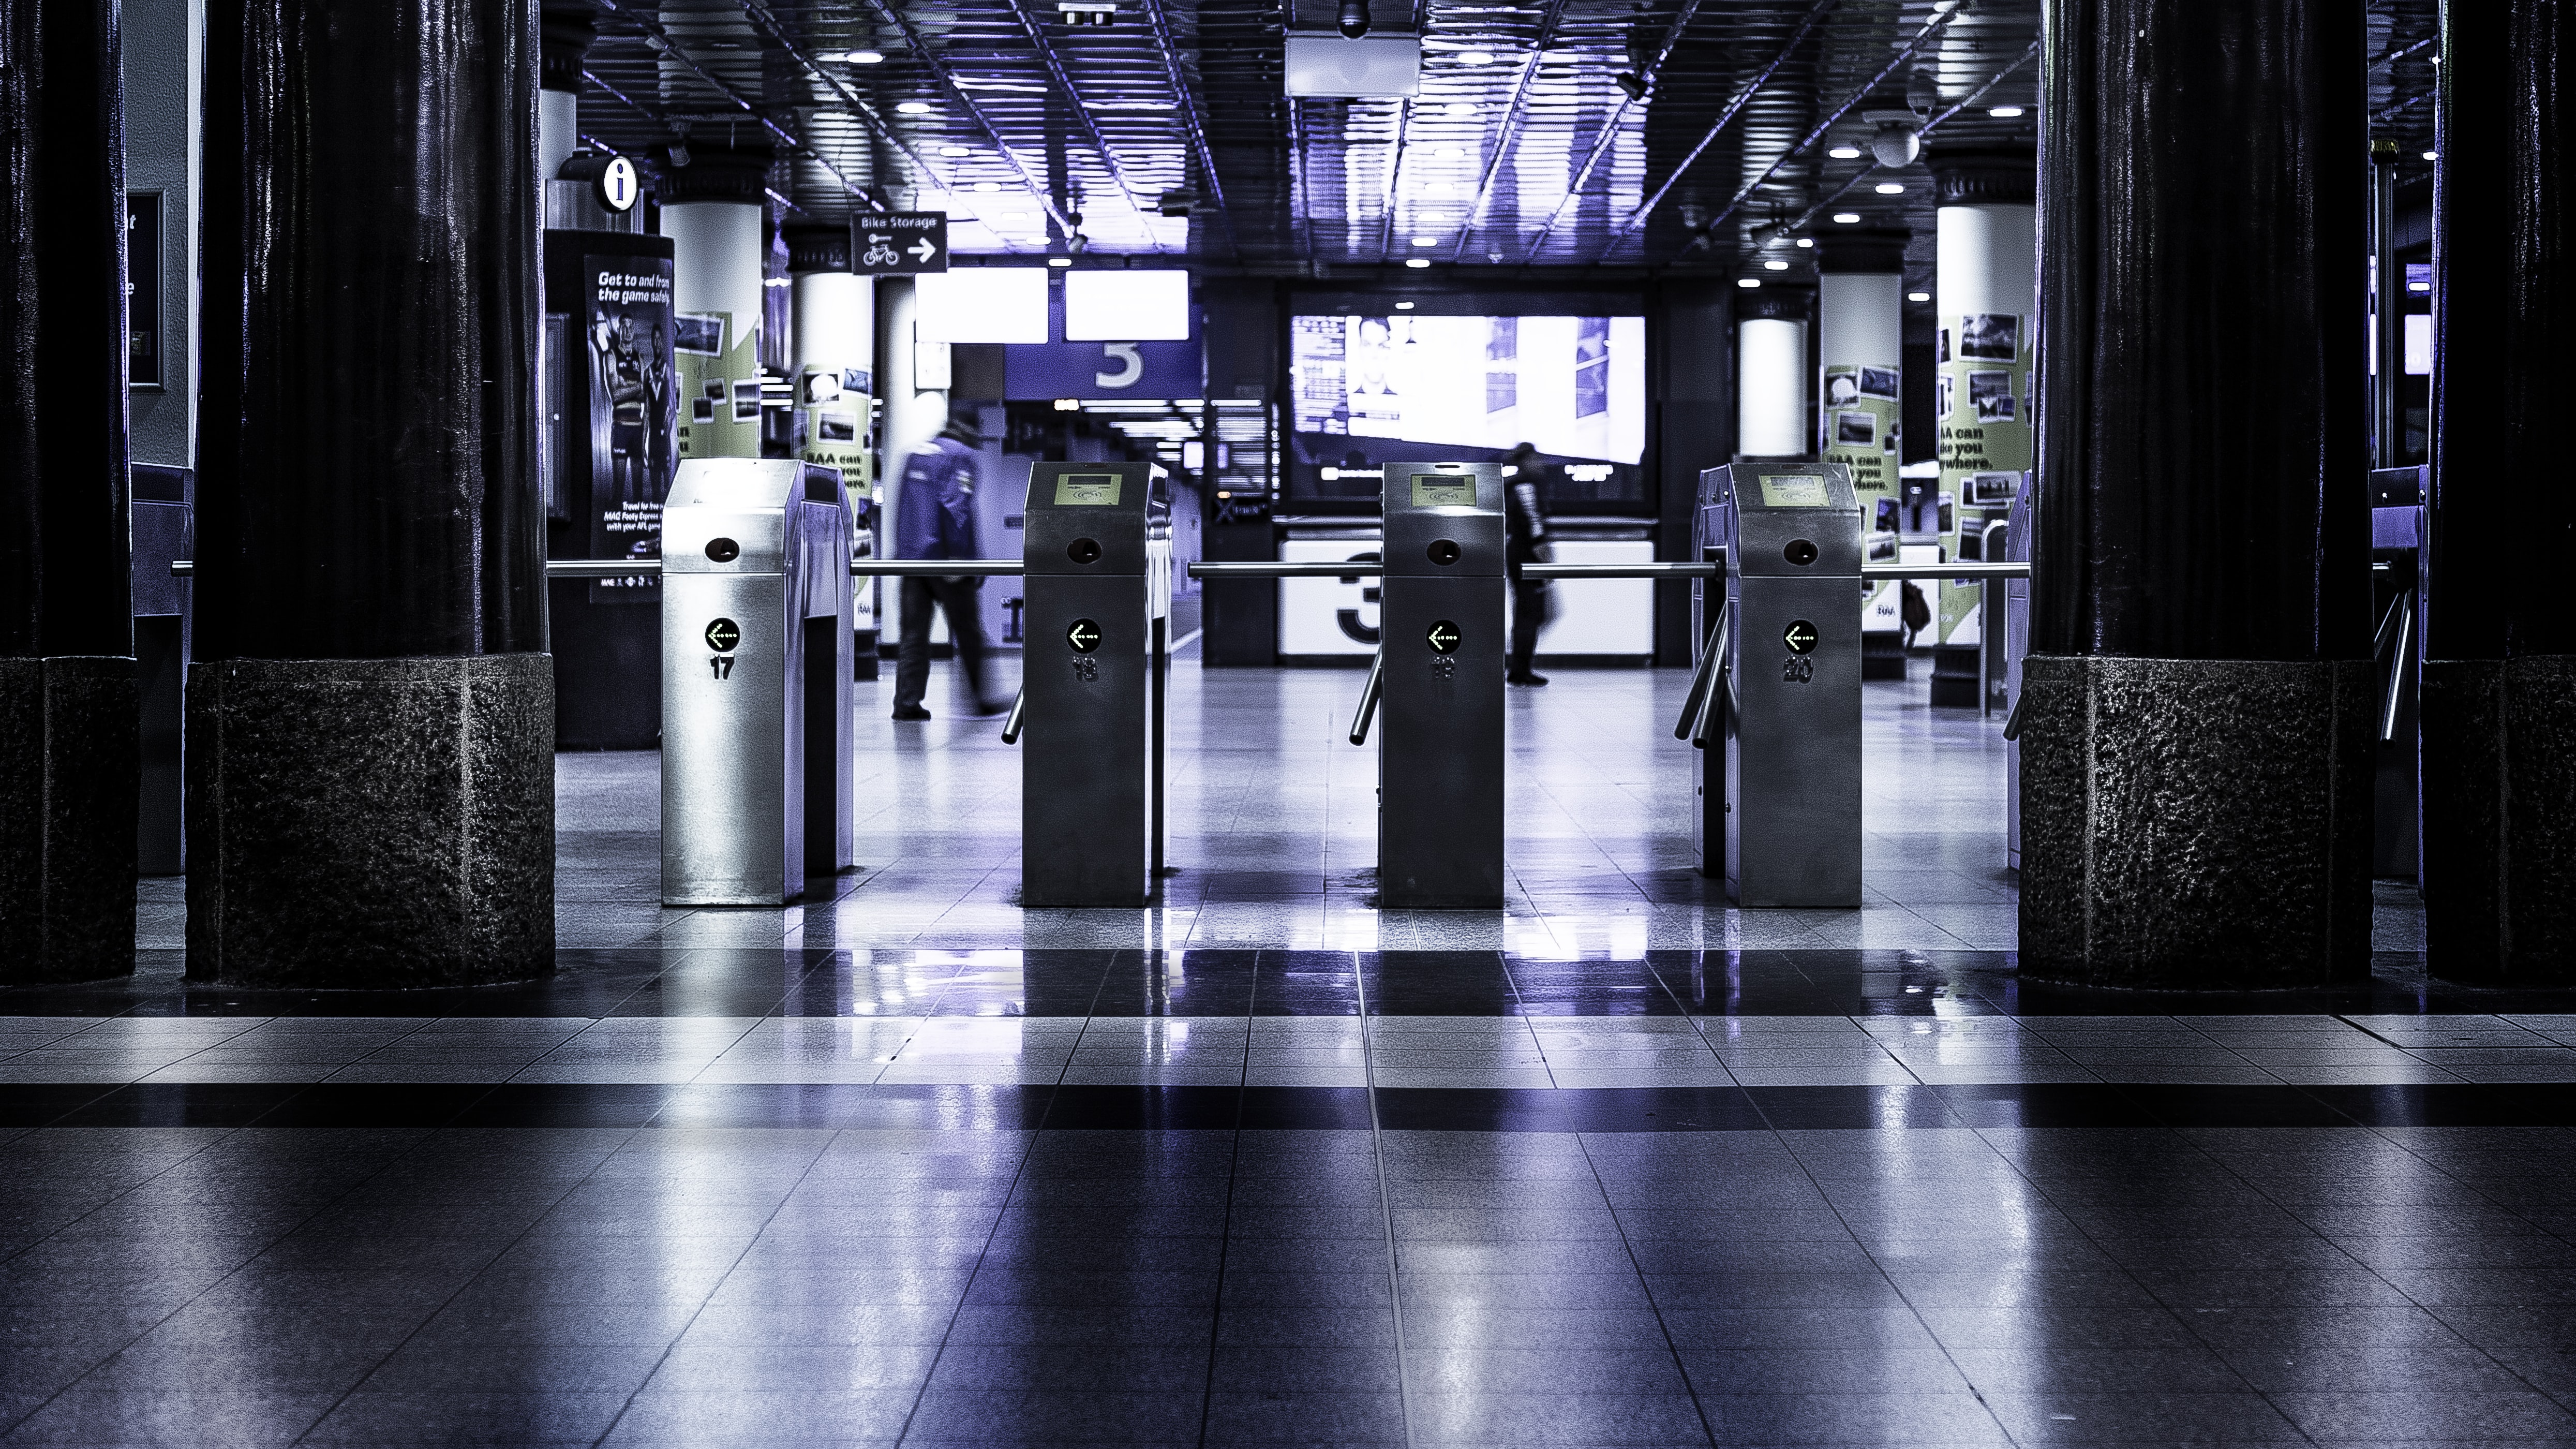 Turnstiles at the entrance to a public transport station